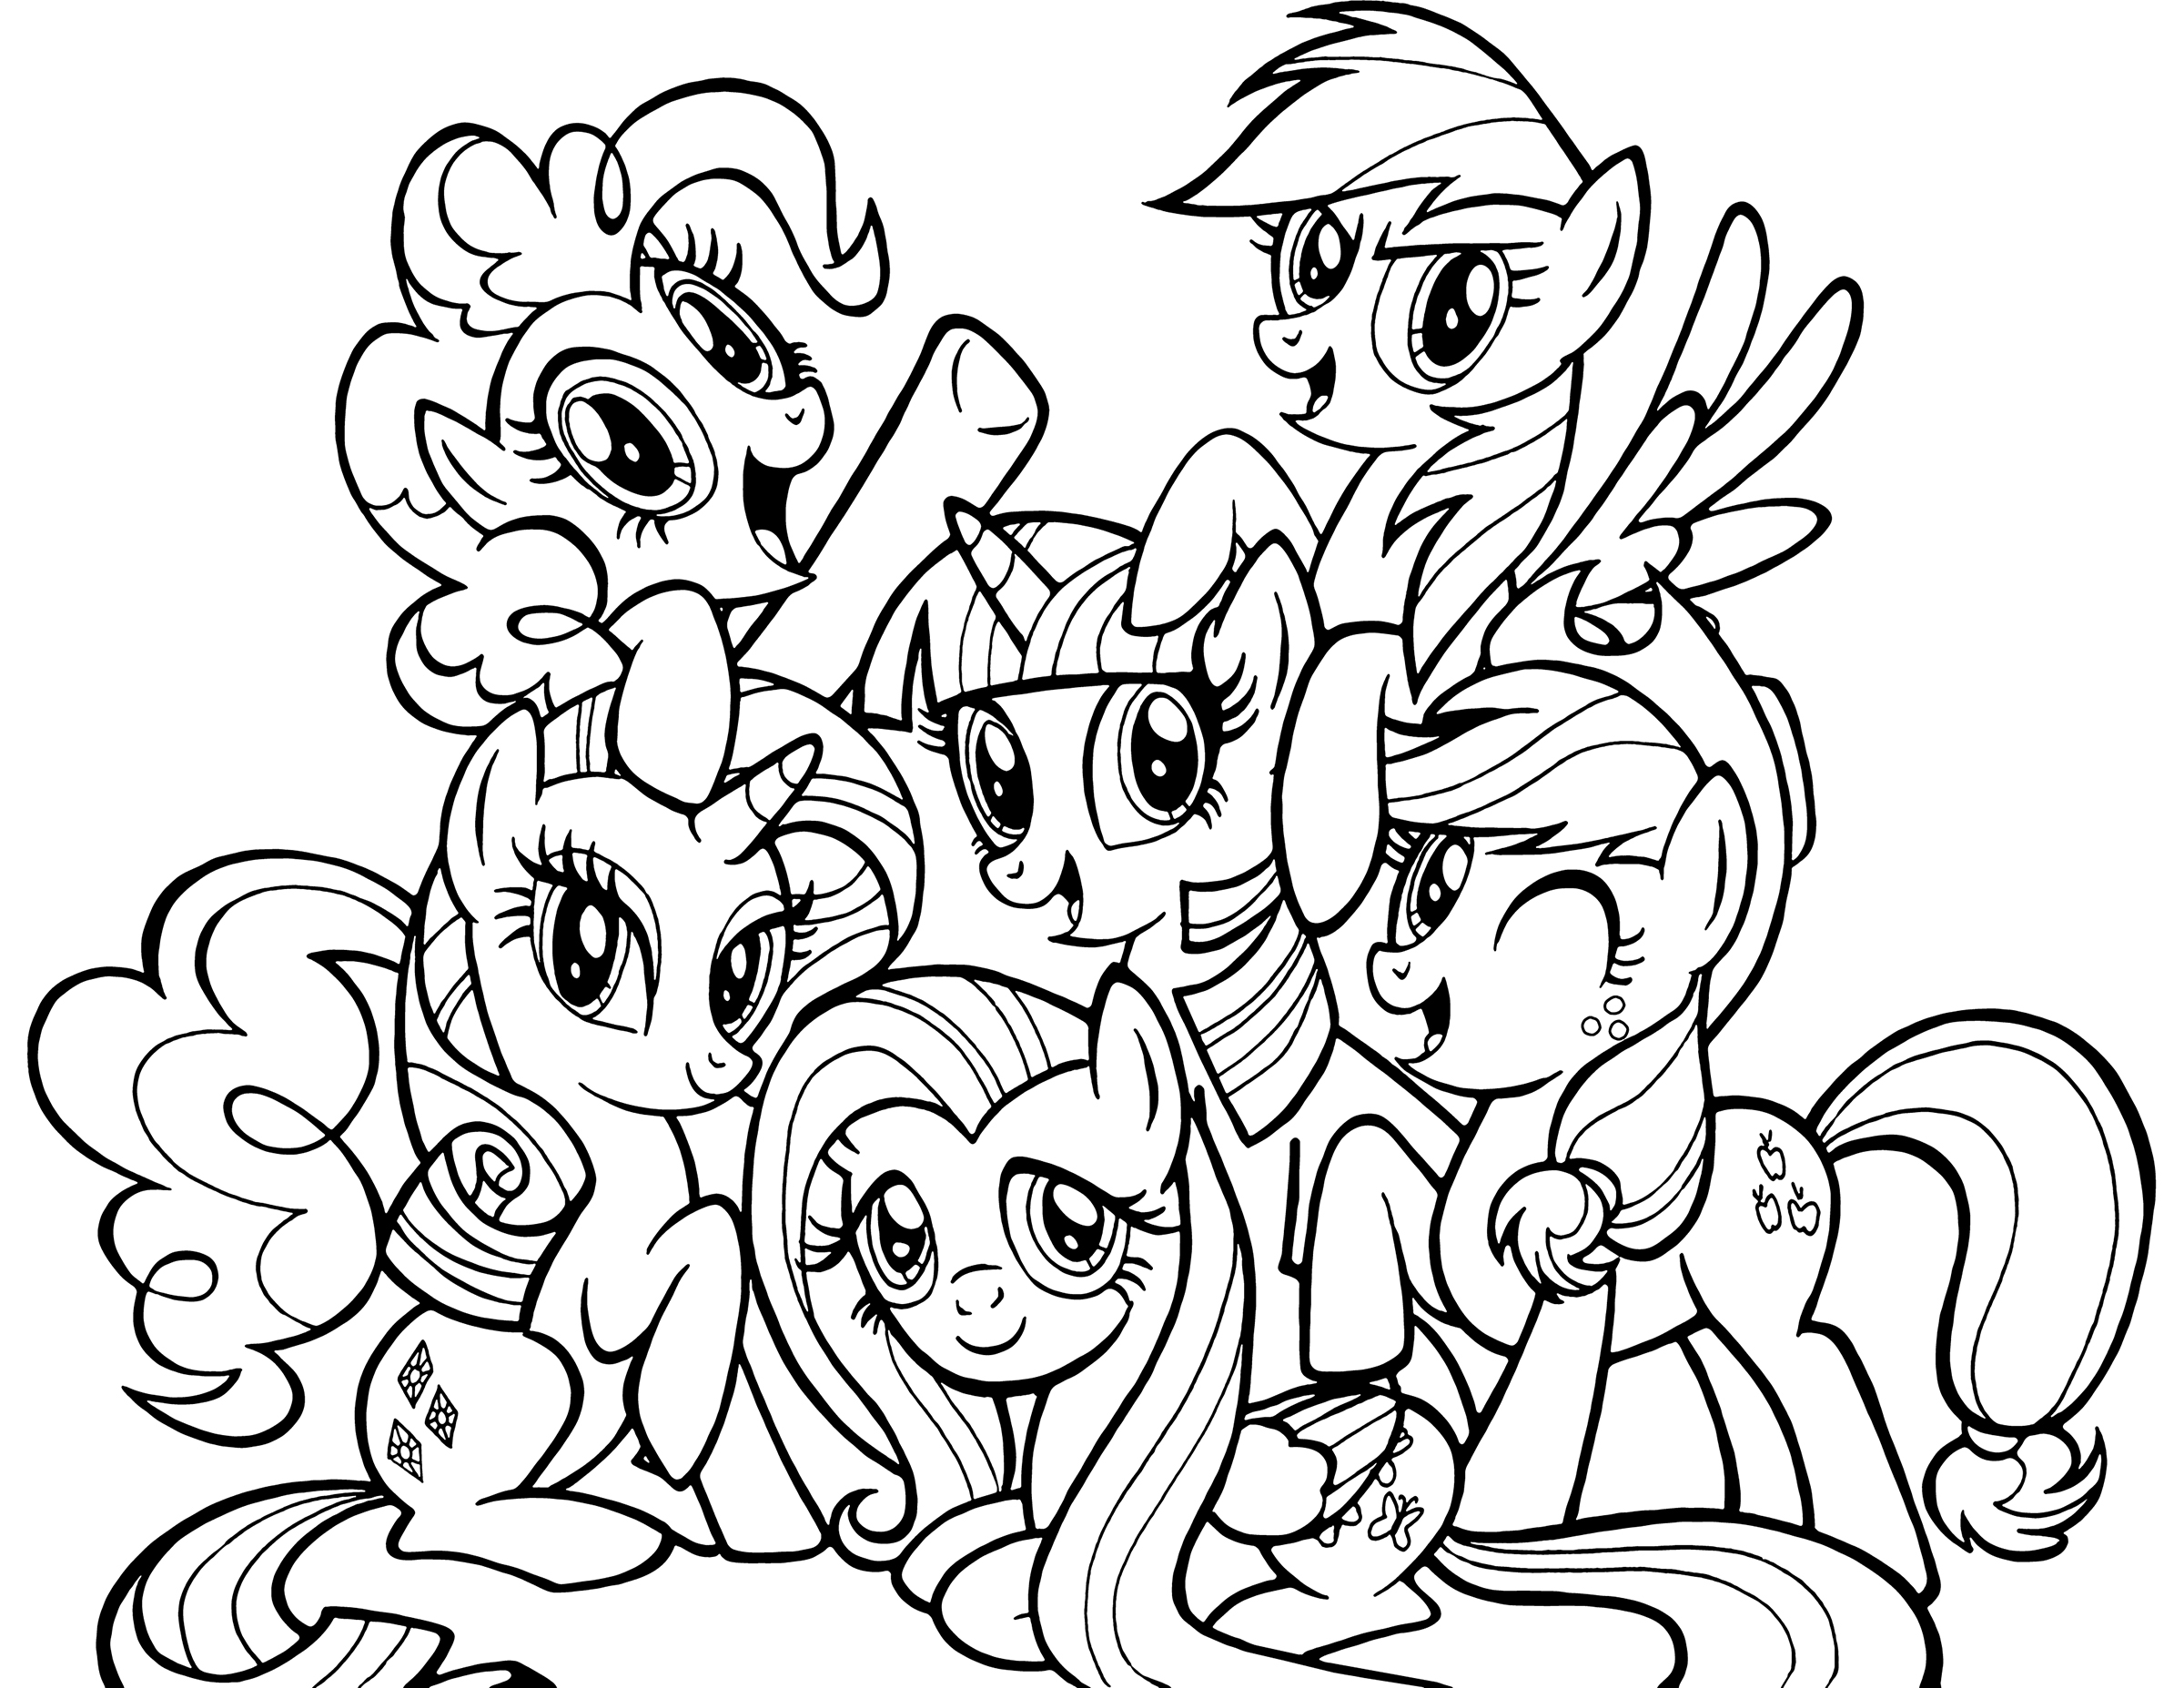 my little pony print outs my little pony coloring page mlp scootaloo unicorn print outs little pony my